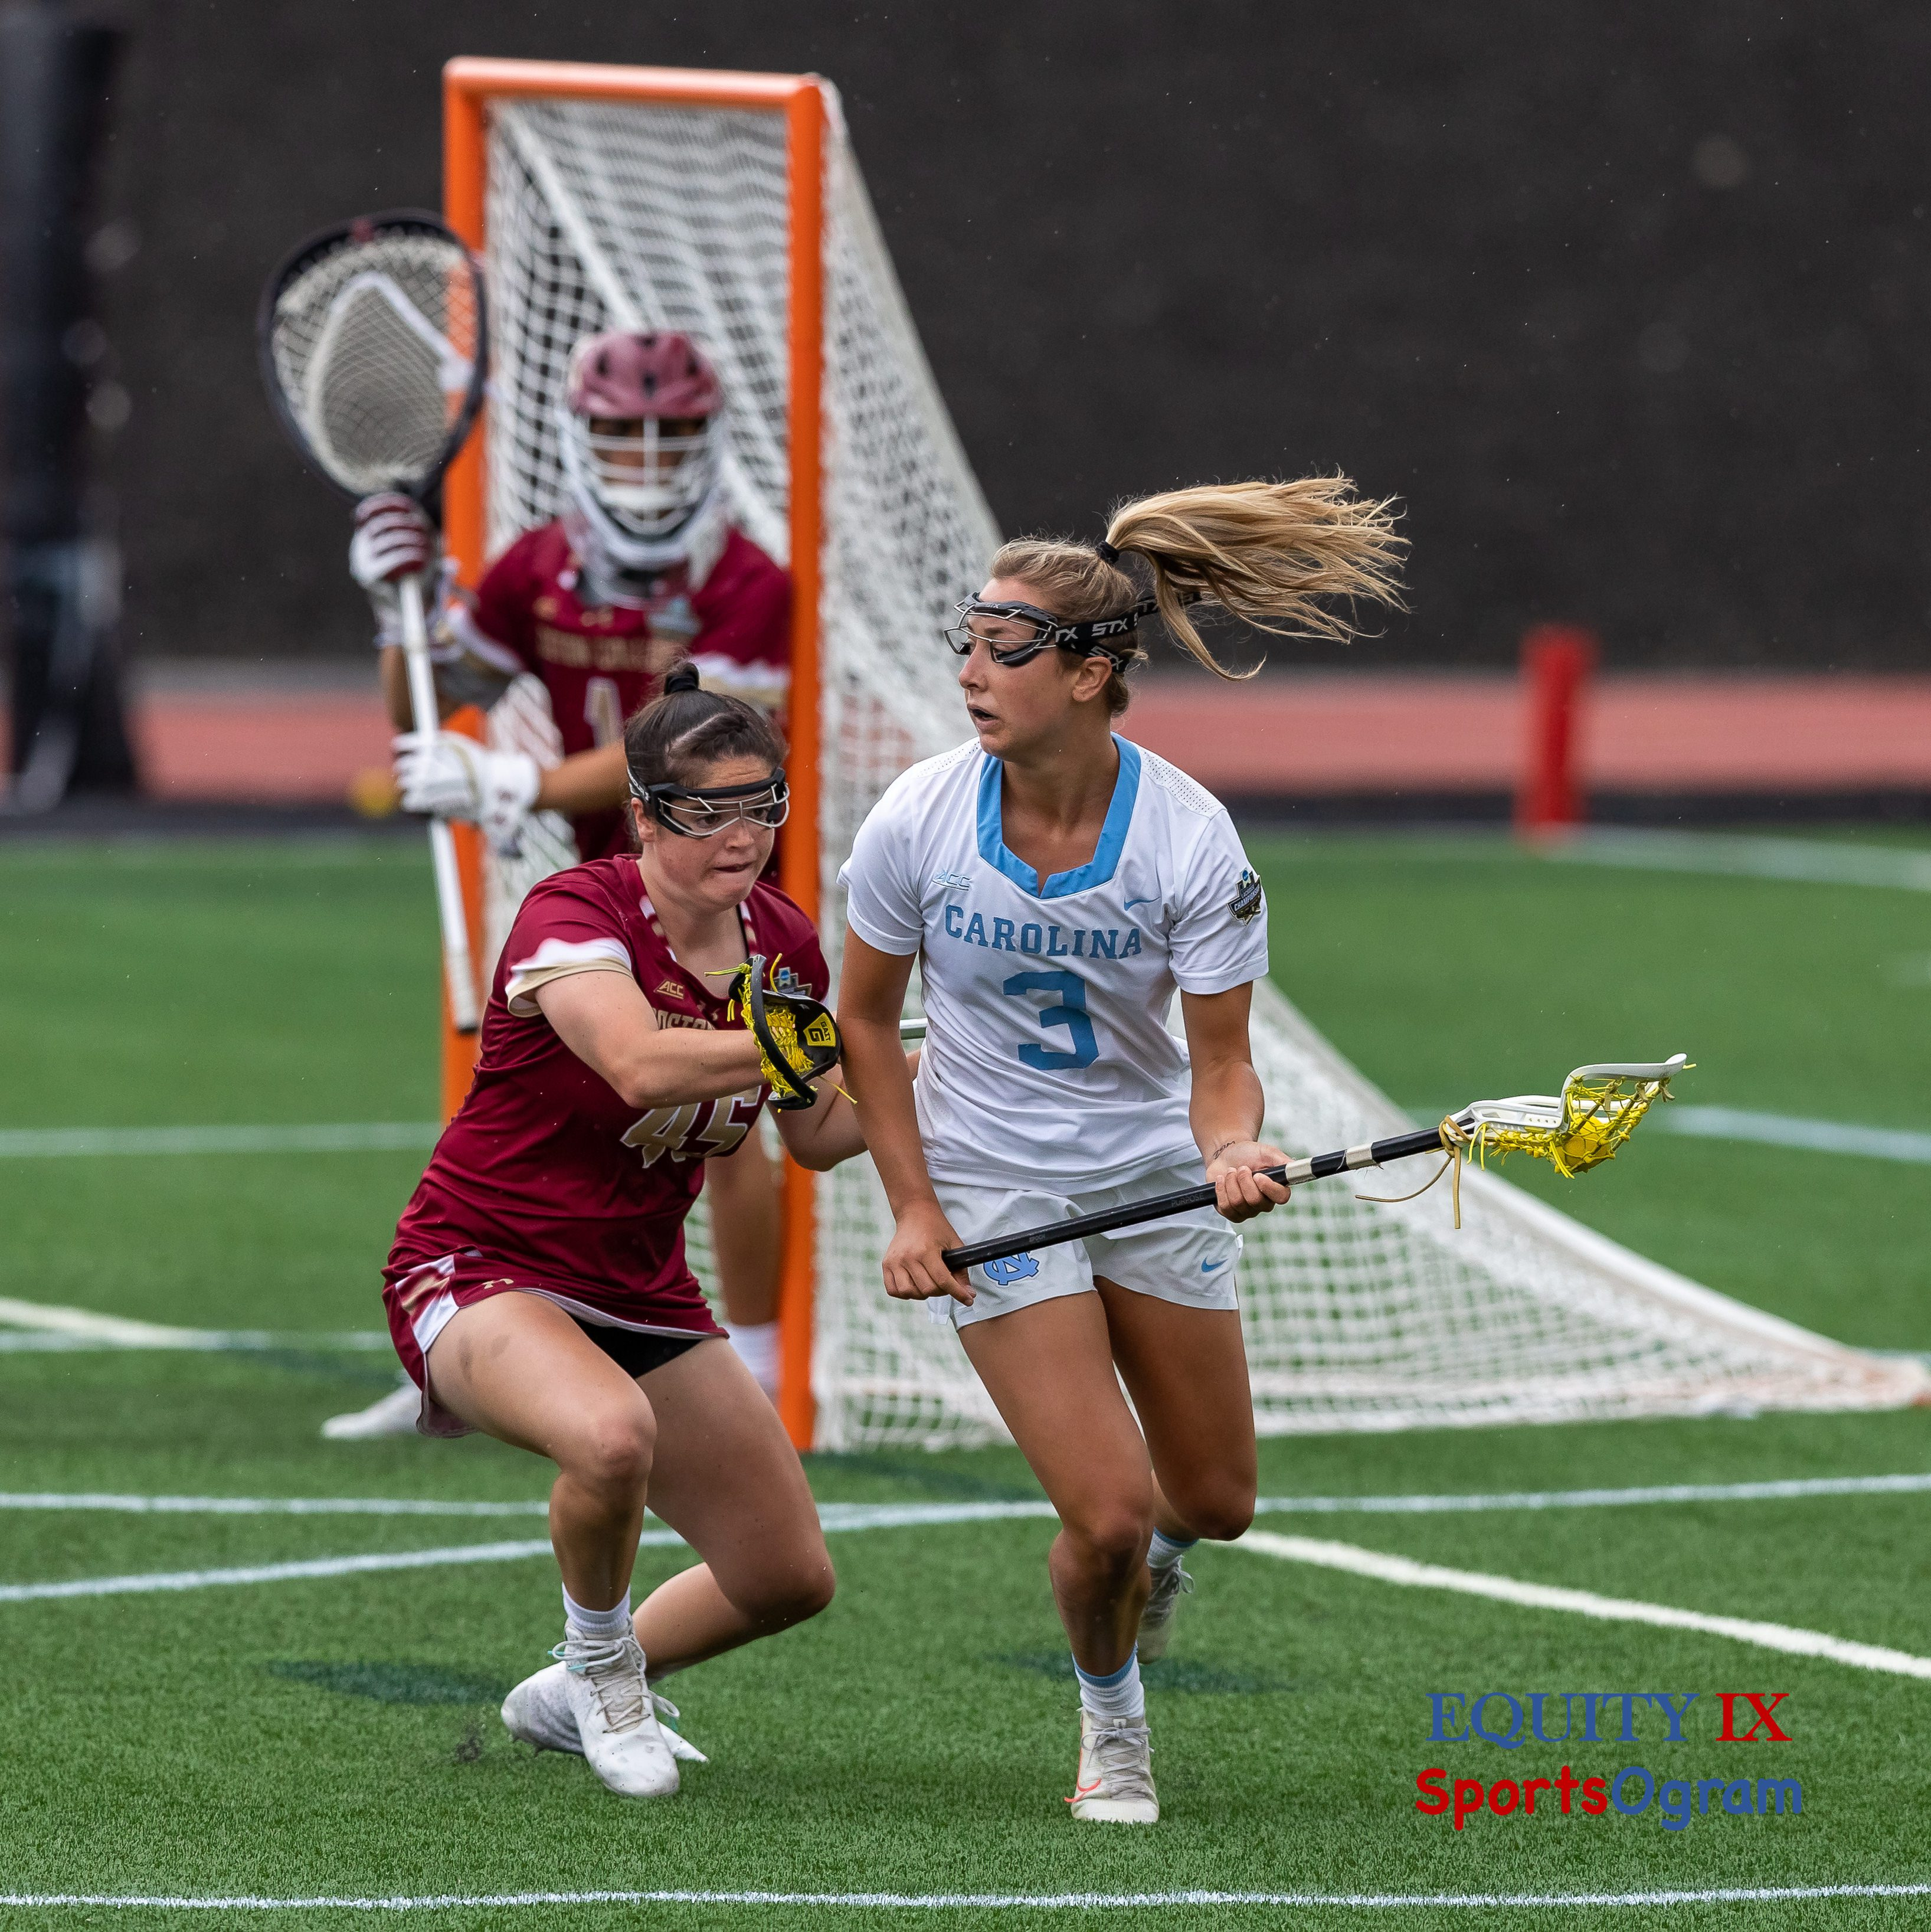 #3 Jamie Ortega (UNC) looks to pass lacrosse ball but is tightly defended by #45 Sydney Scales (Boston College) cross checking Jamie's right arm and forcing her away from the goal - 2021 NCAA Women's Lacrosse Final Four © Equity IX - SportsOgram - Leigh Ernst Friestedt